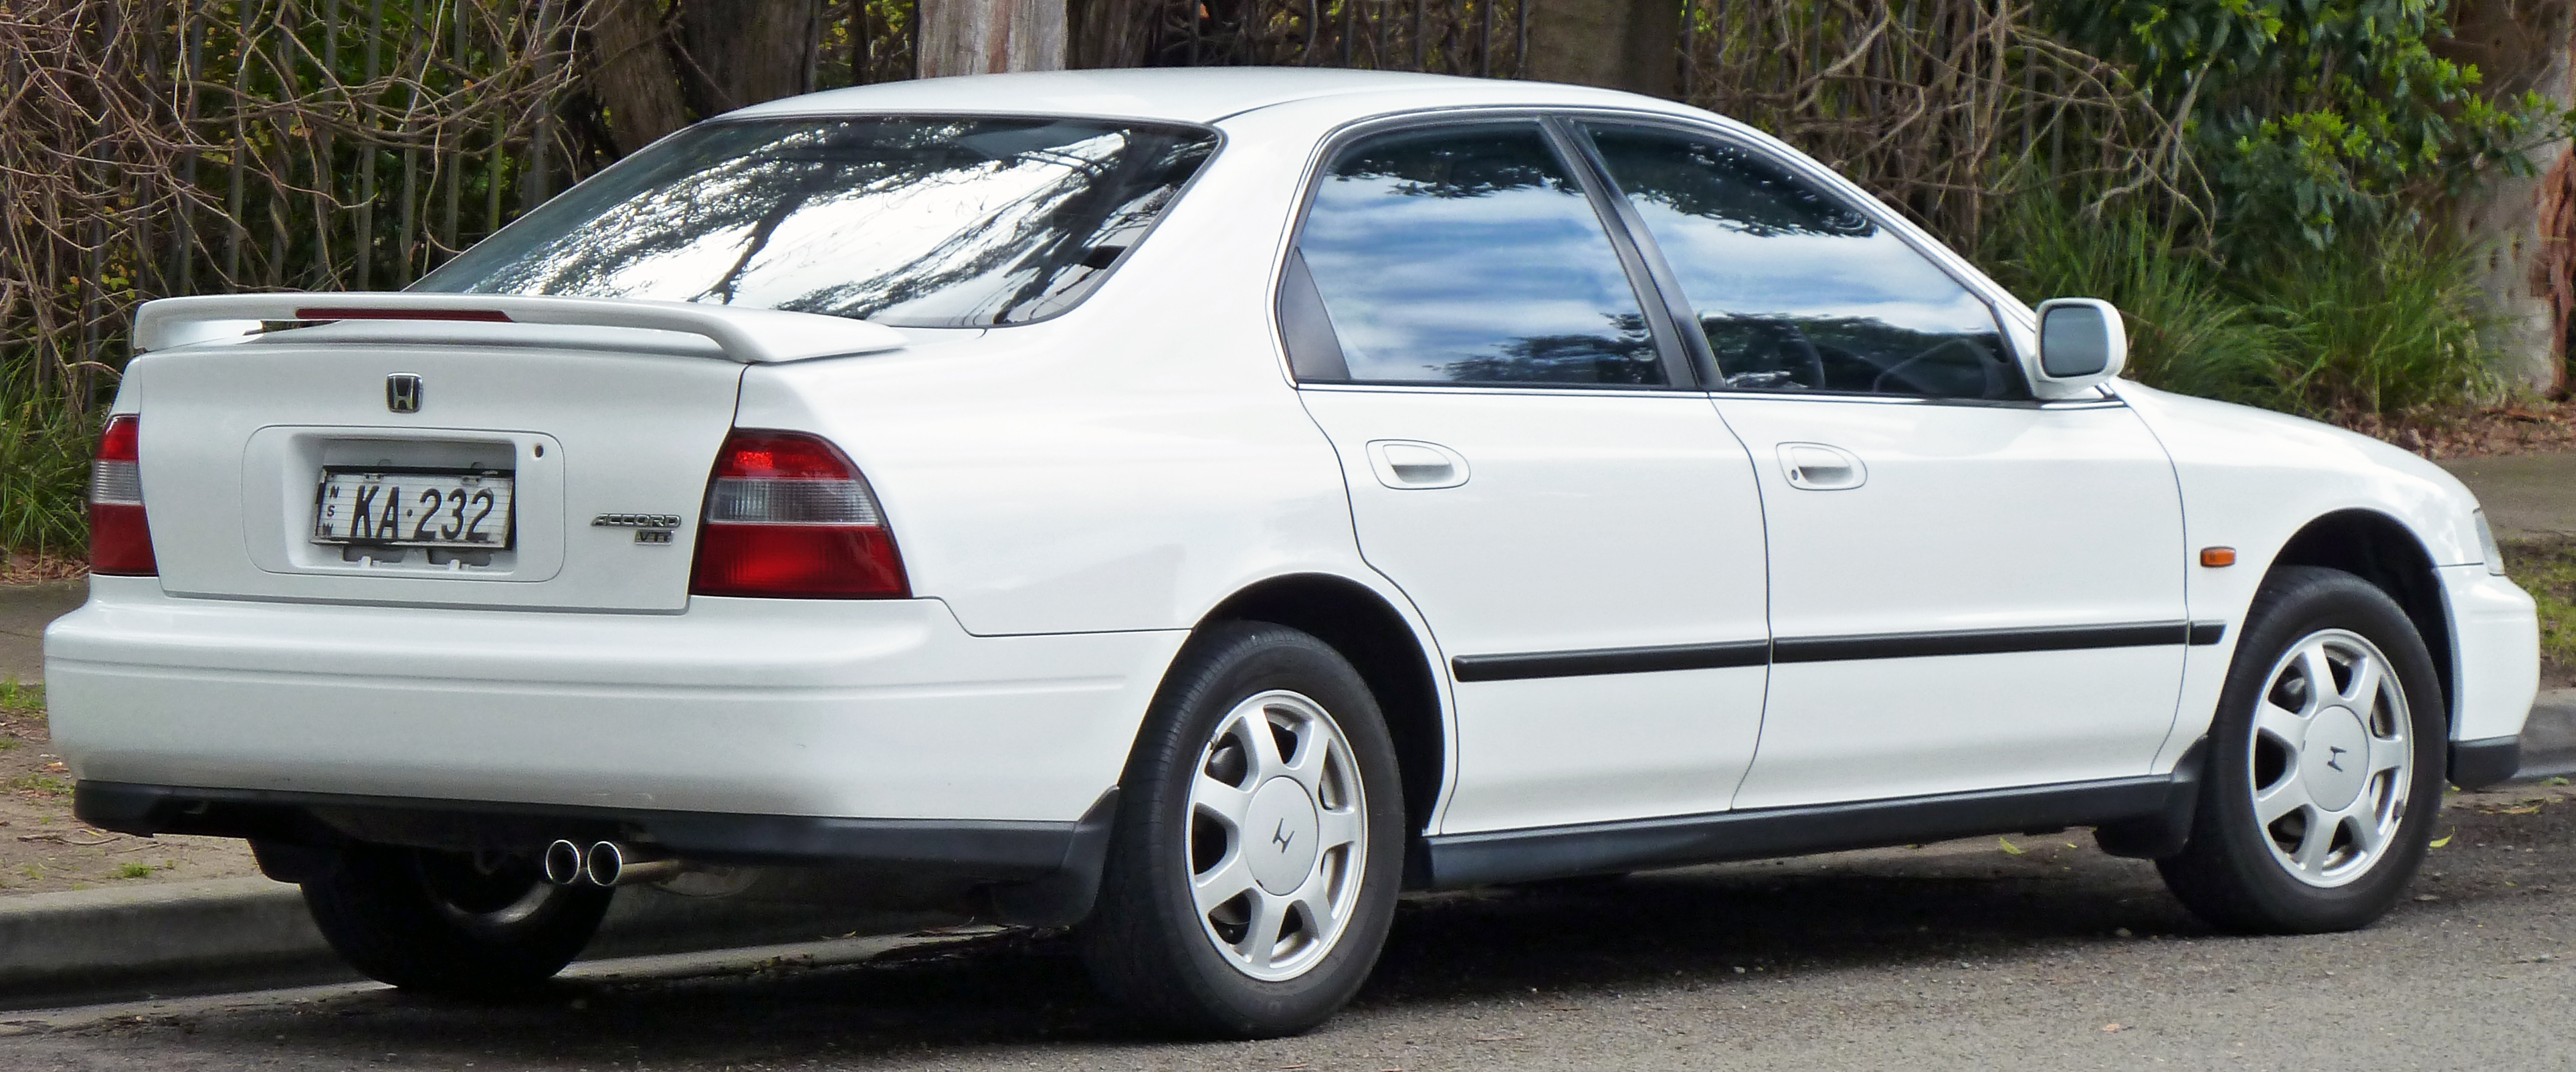 [Image: 1993-1995_Honda_Accord_VTi_sedan_02.jpg]